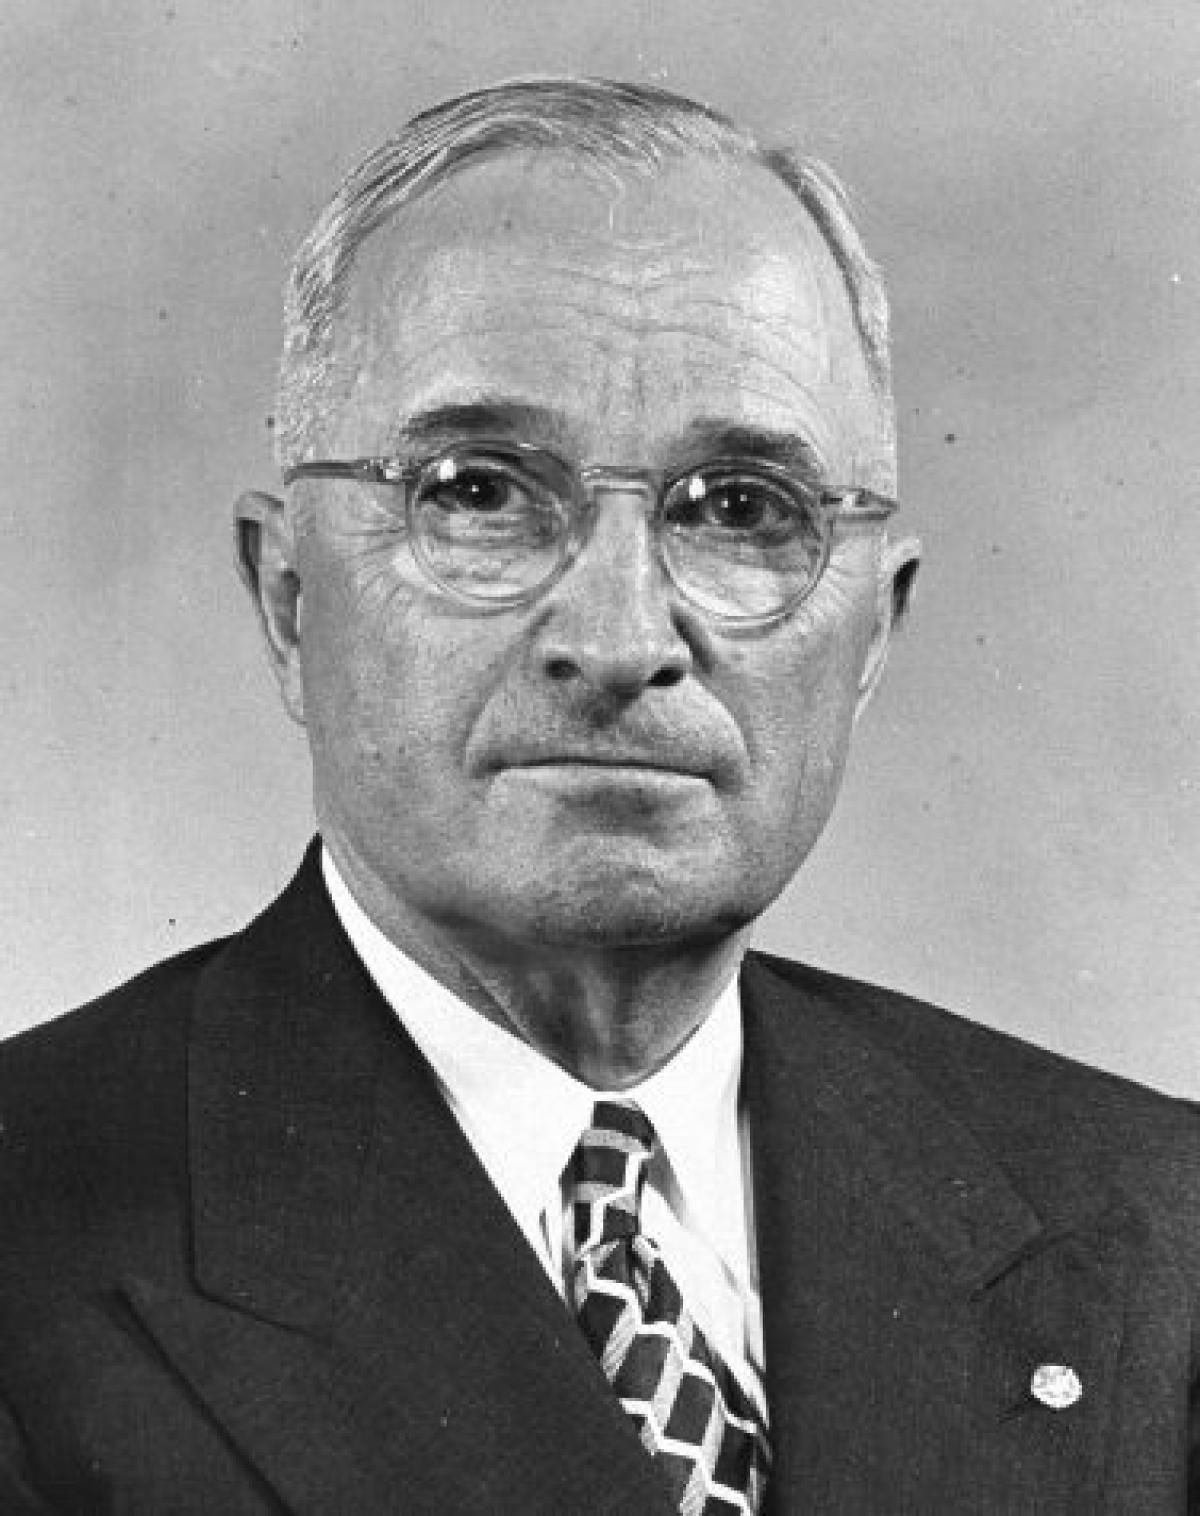 analyzing president trumans views on the korean war Us president truman, not the un, appointed general macarthur as  sources a  and b agree or disagree about america's involvement in the korean war.